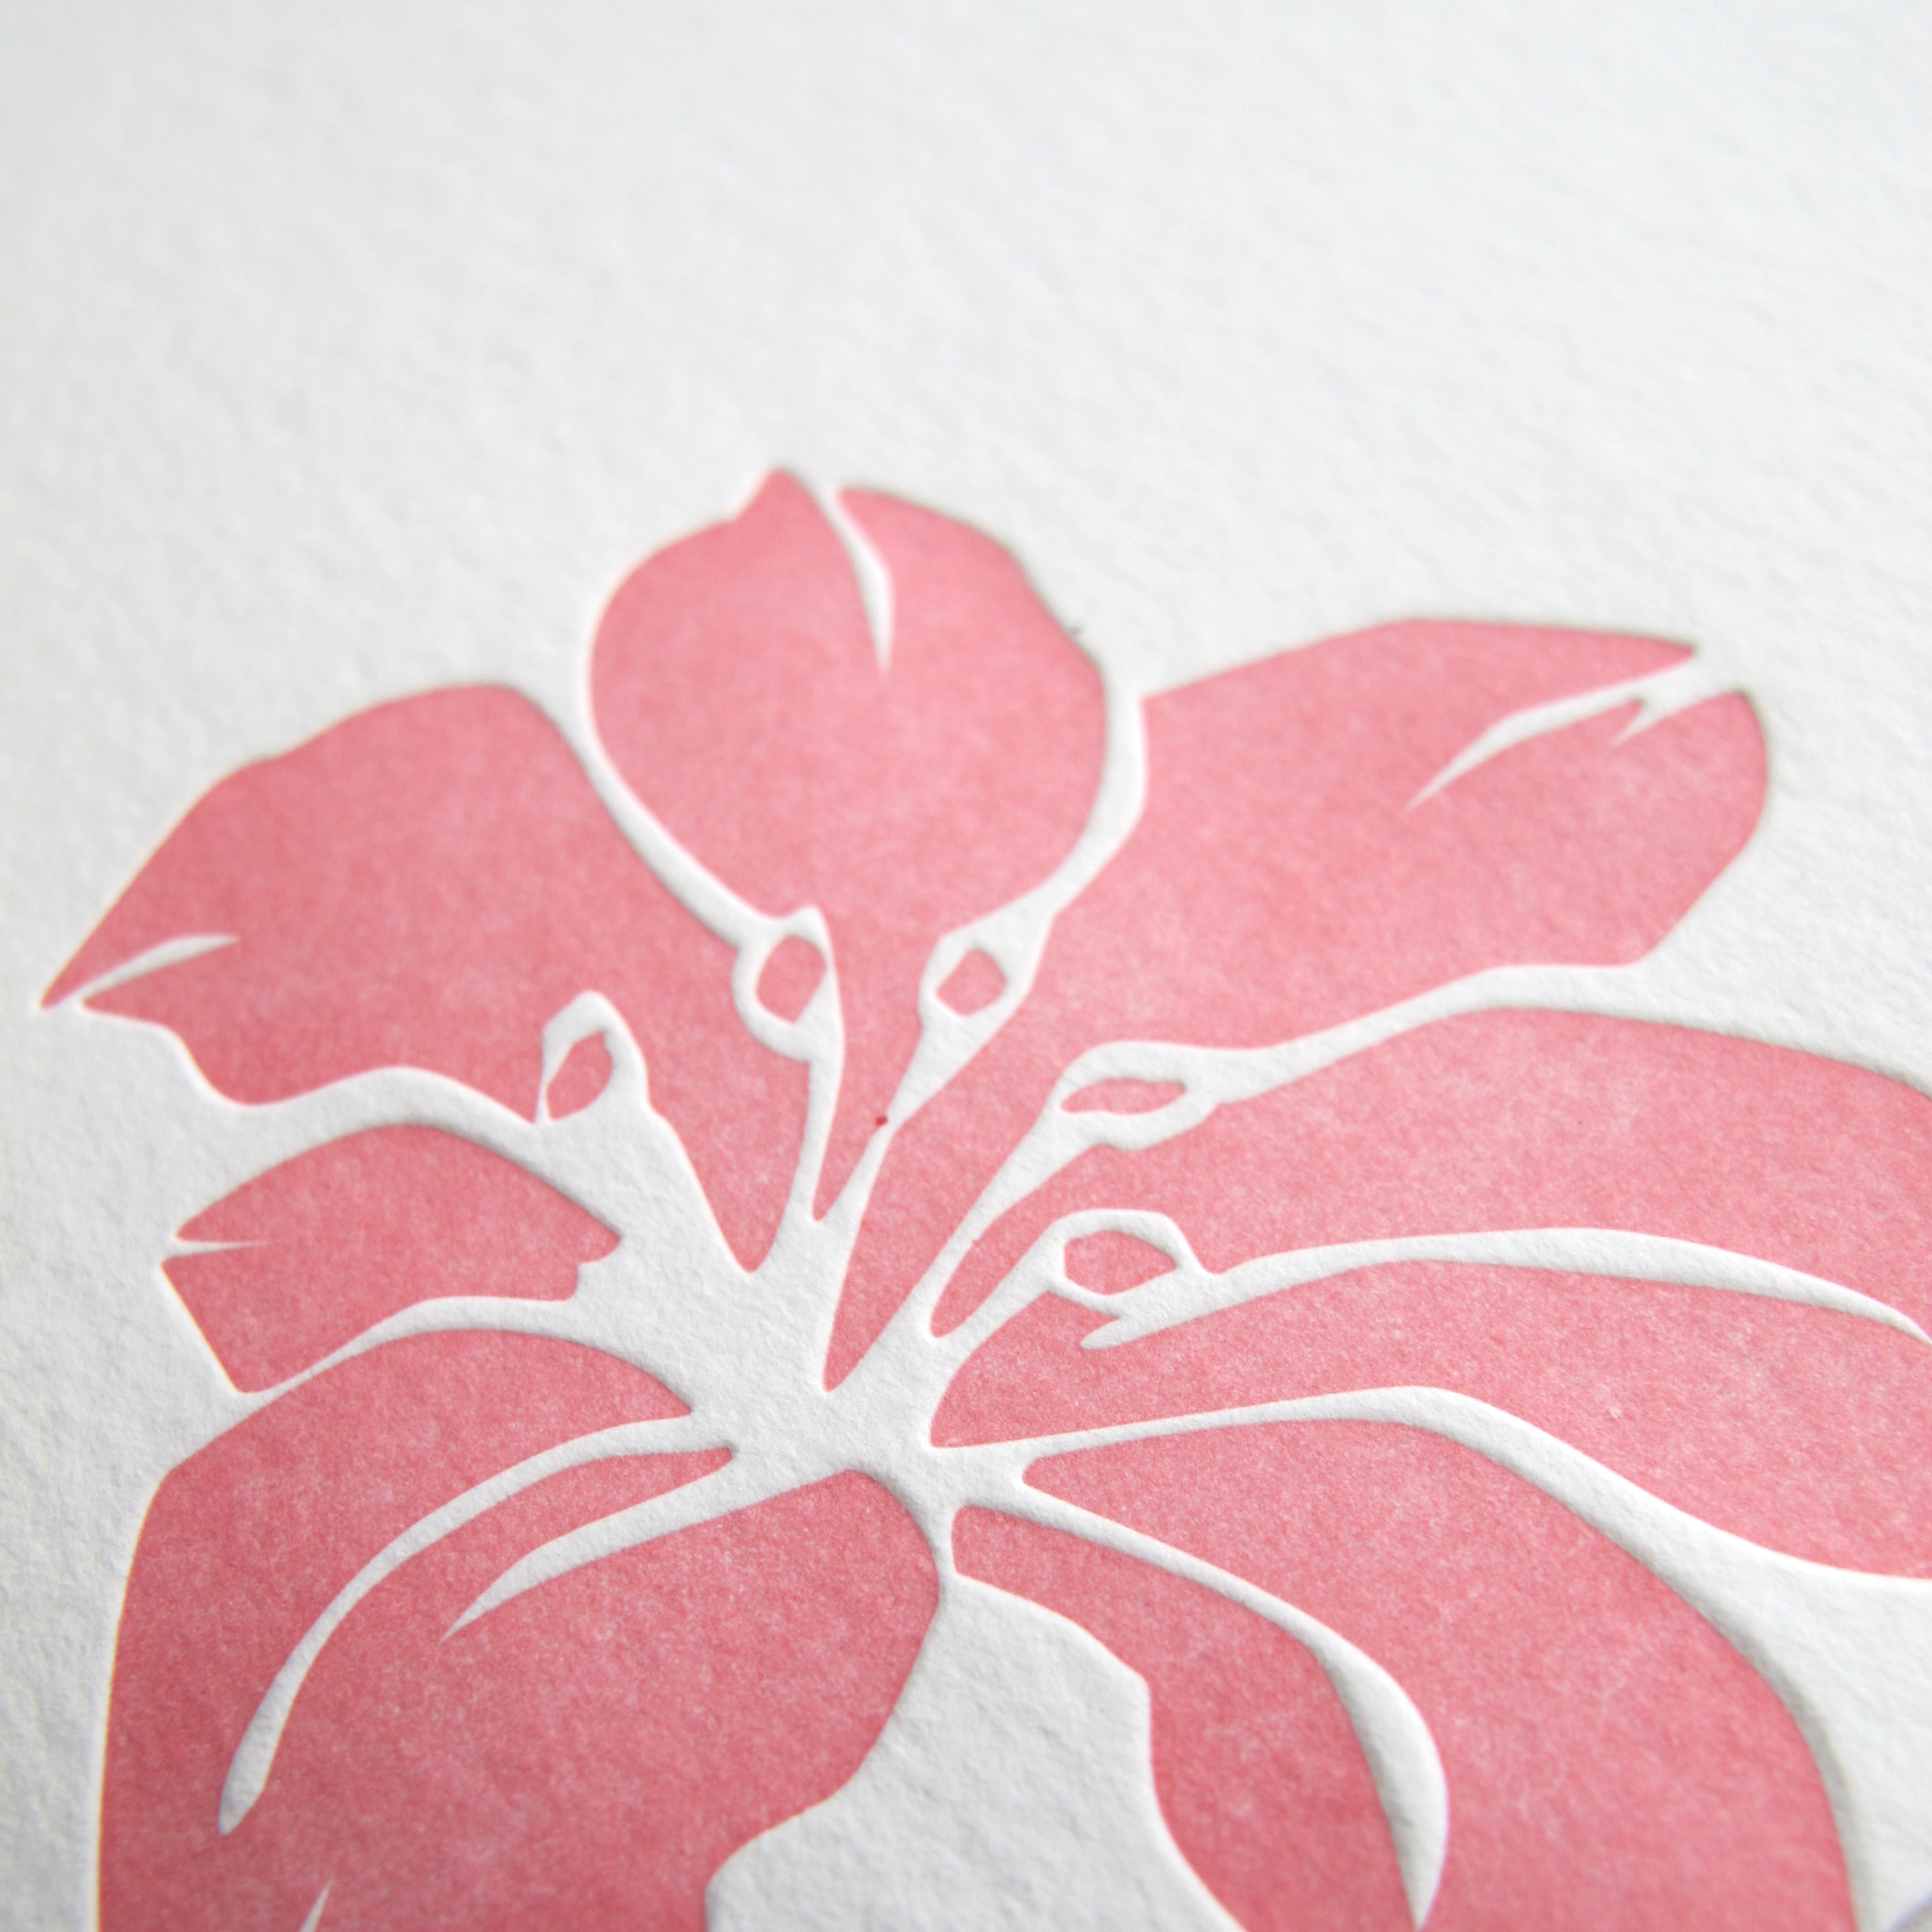 stationery_hibiscus_4.jpg